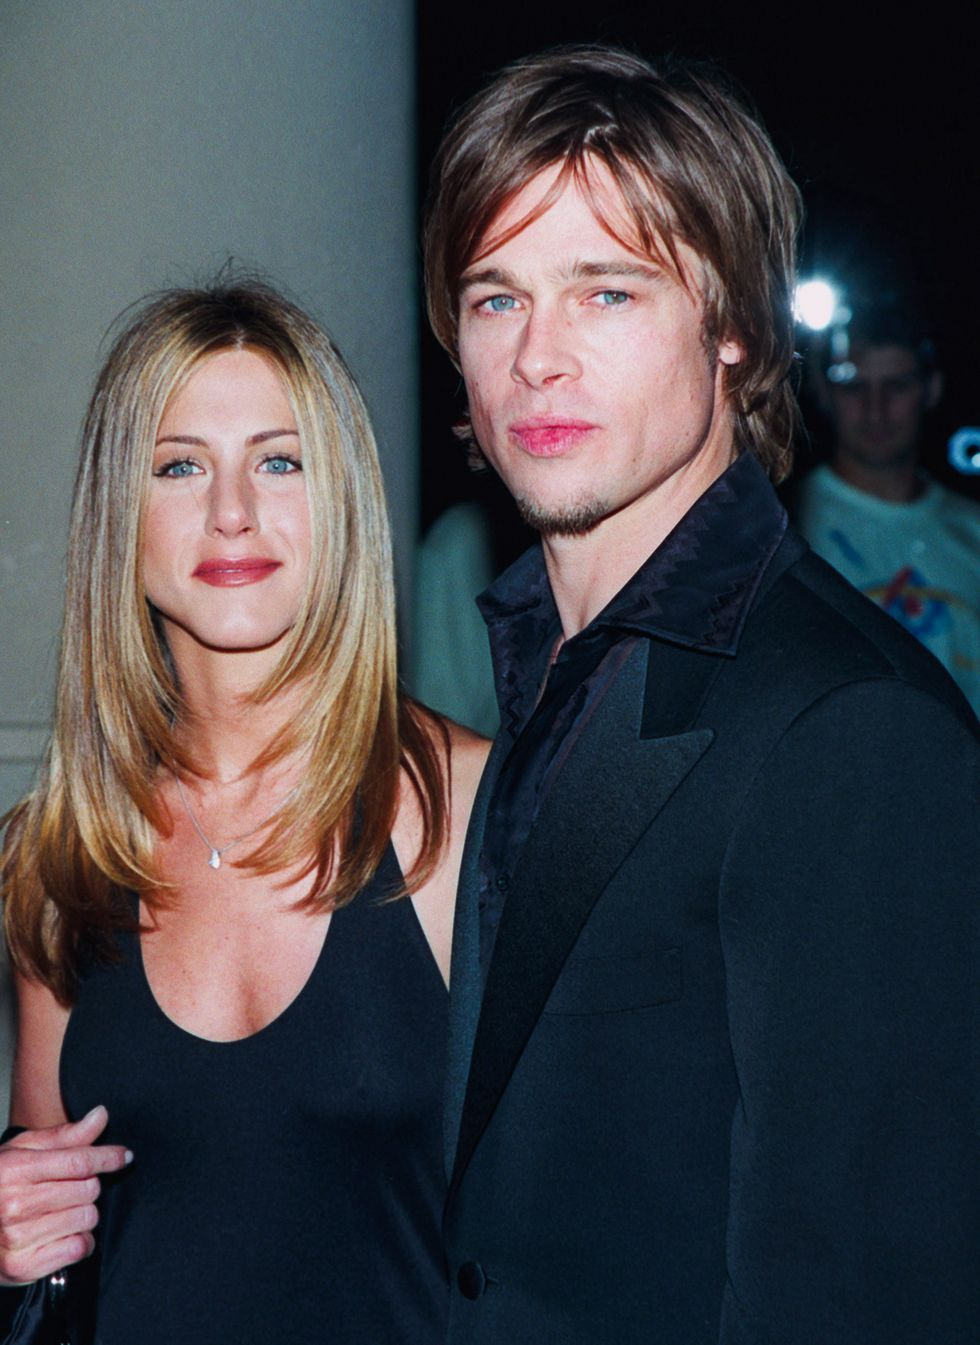 Relive Brad Pitt And Jennifer Aniston S Romance From The 90s To Their Flirtatious Current Relationship In 2020 Brad Pitt And Jennifer Jennifer Aniston Style Jennifer Aniston Young